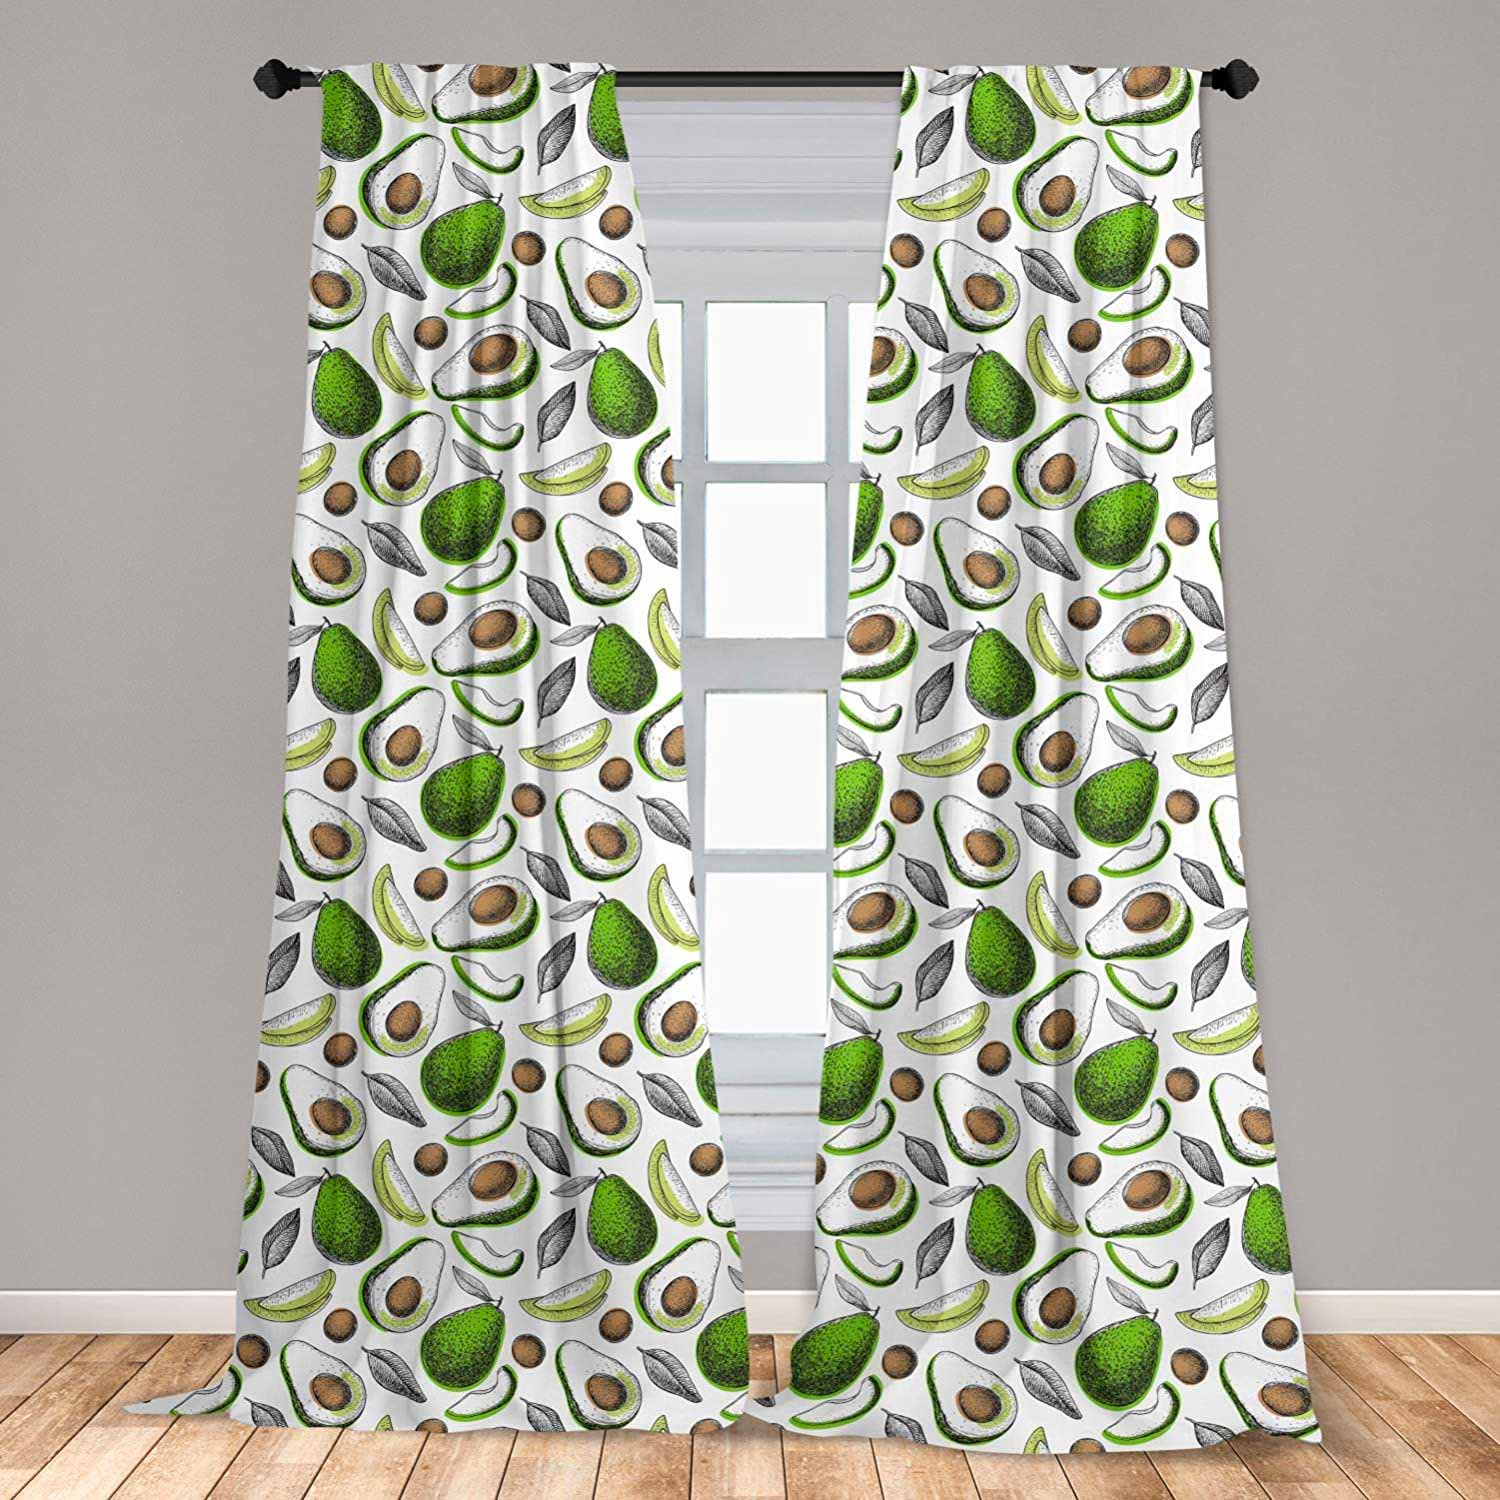 2 Panel Curtain Set, Organic Avocado Leaves